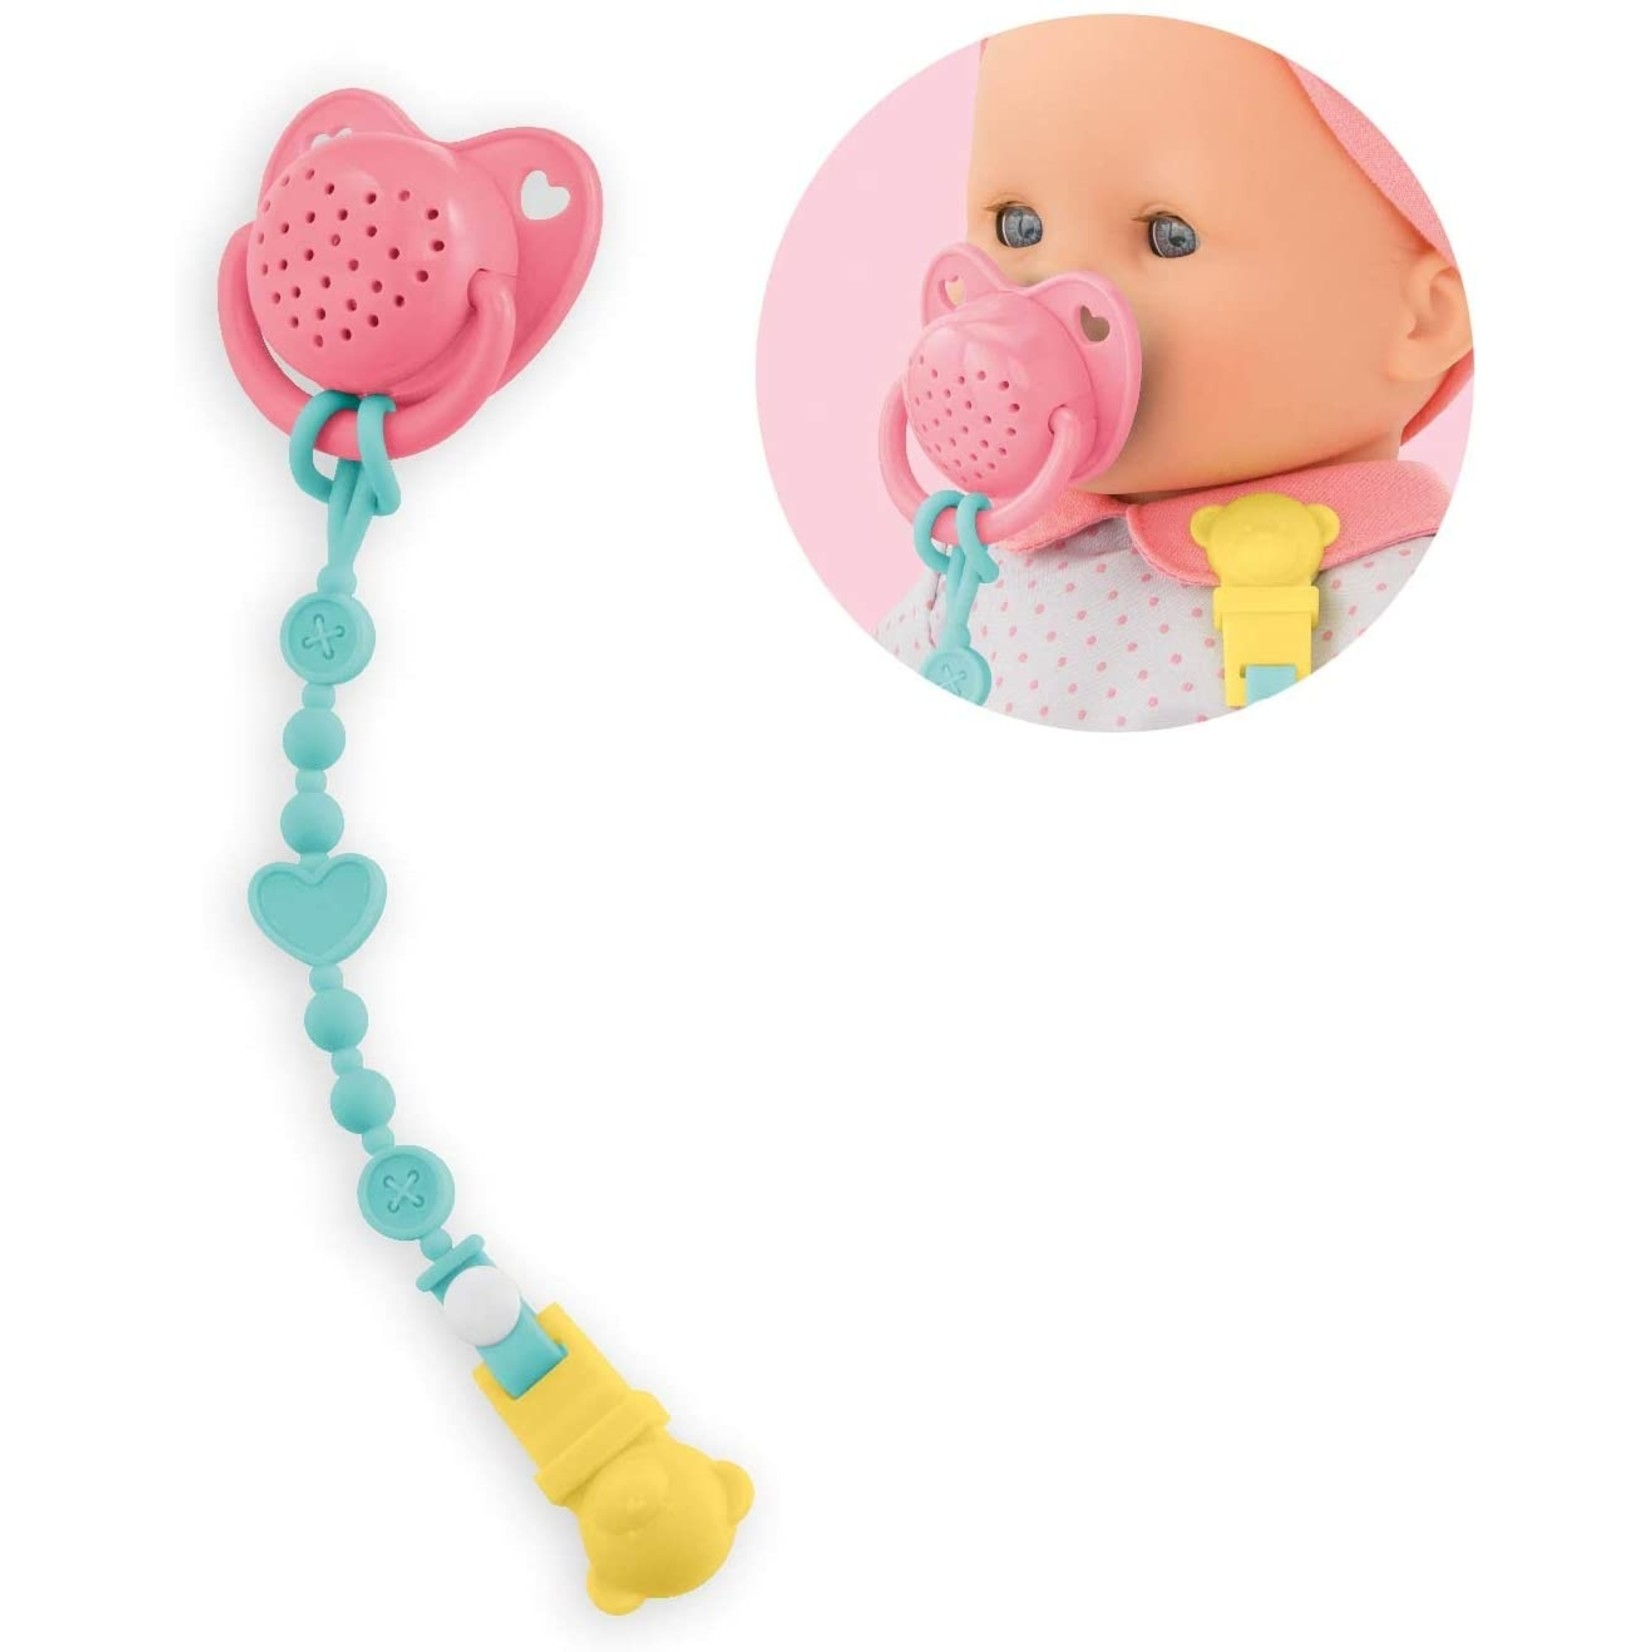 COROLLE PACIFIER WITH SOUNDS